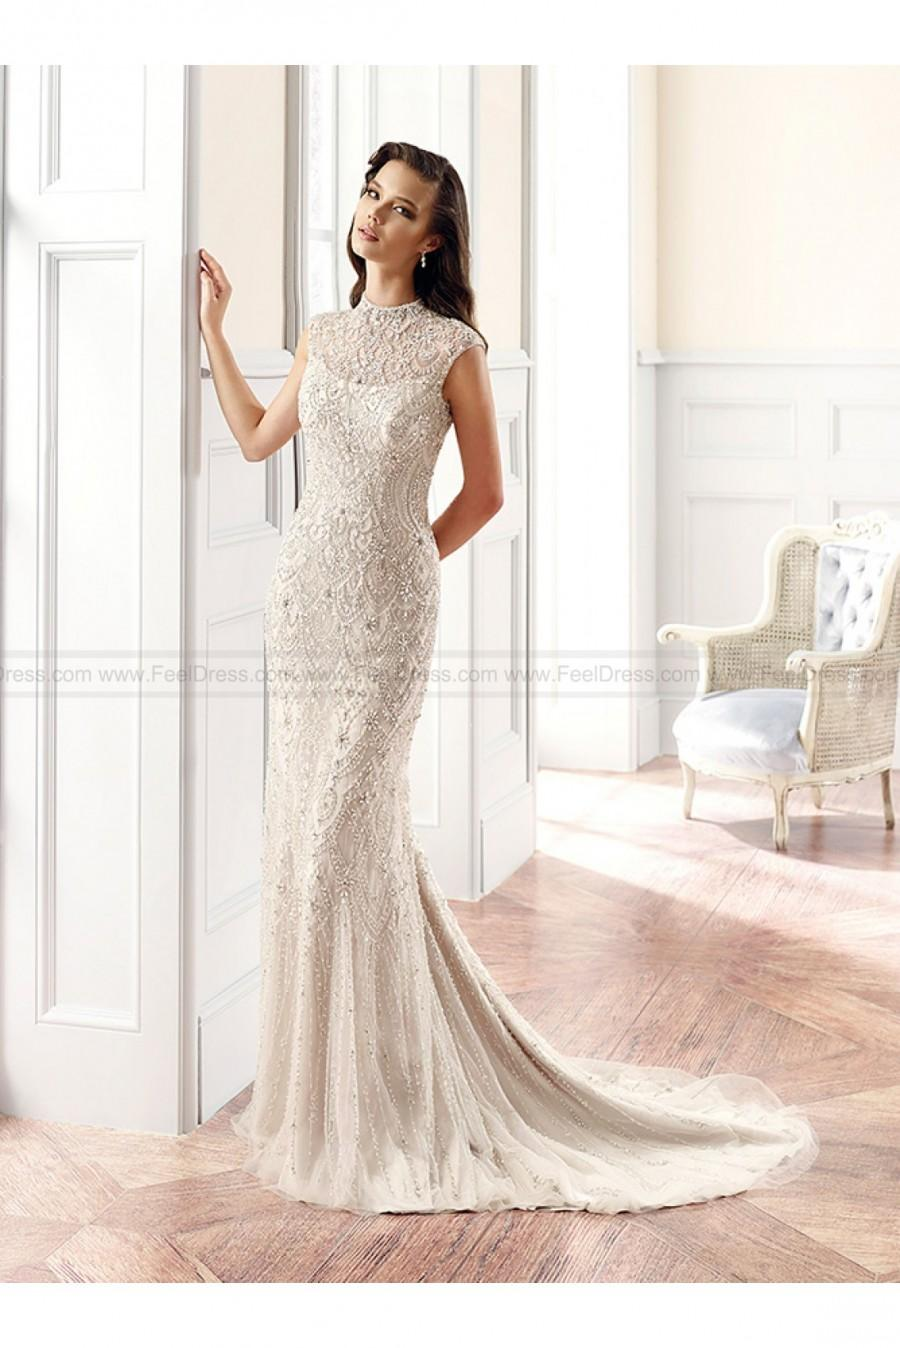 Mariage - Eddy K Couture 2015 Wedding Gowns Style CT143